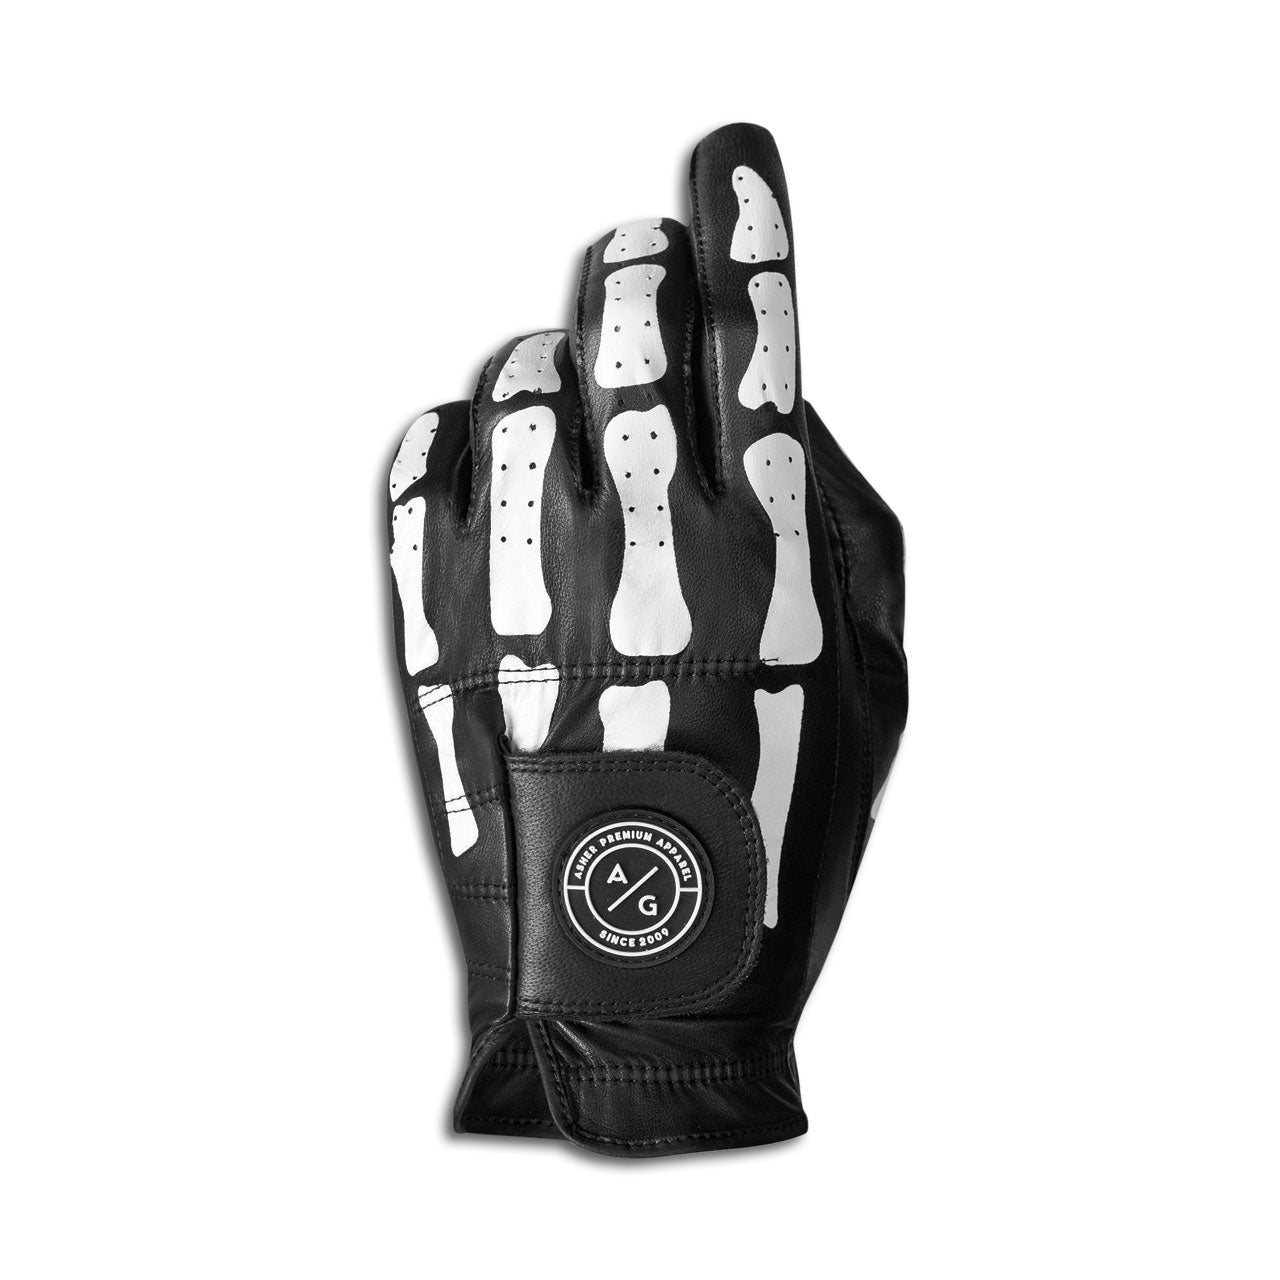 Asher Death Grip Golf Glove